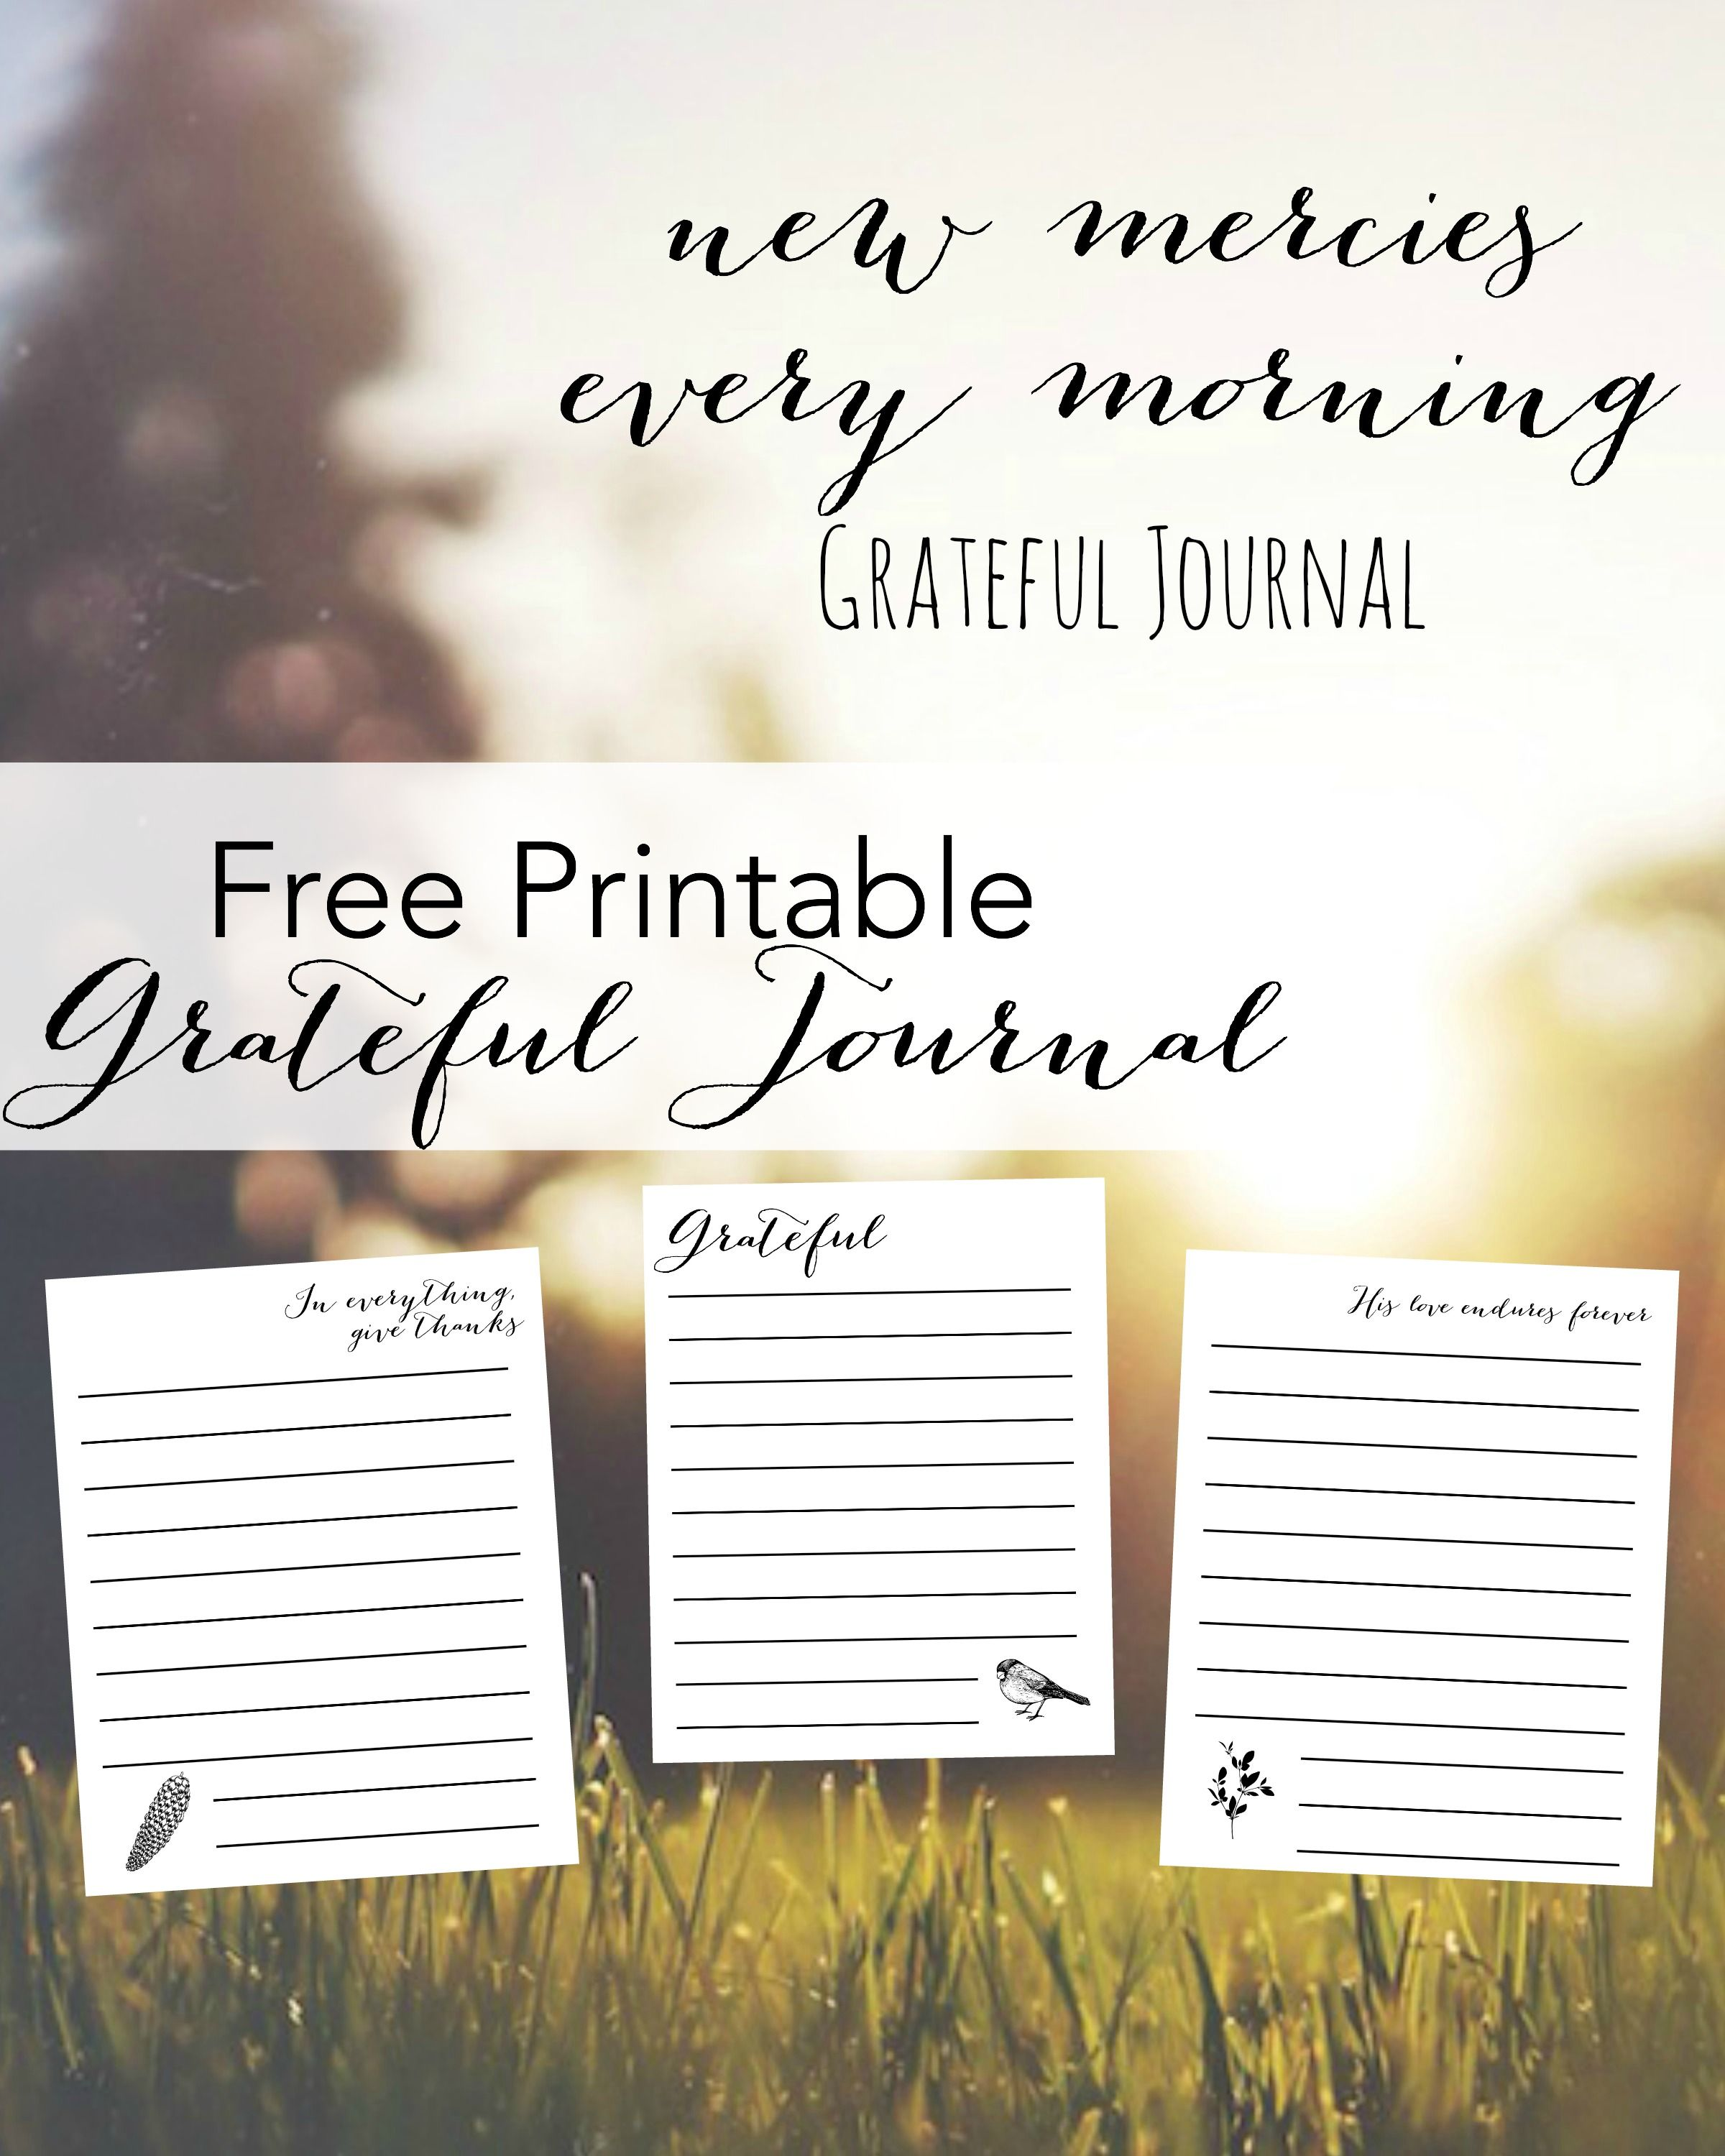 Free Printable Gratitude Journal Freeprintable